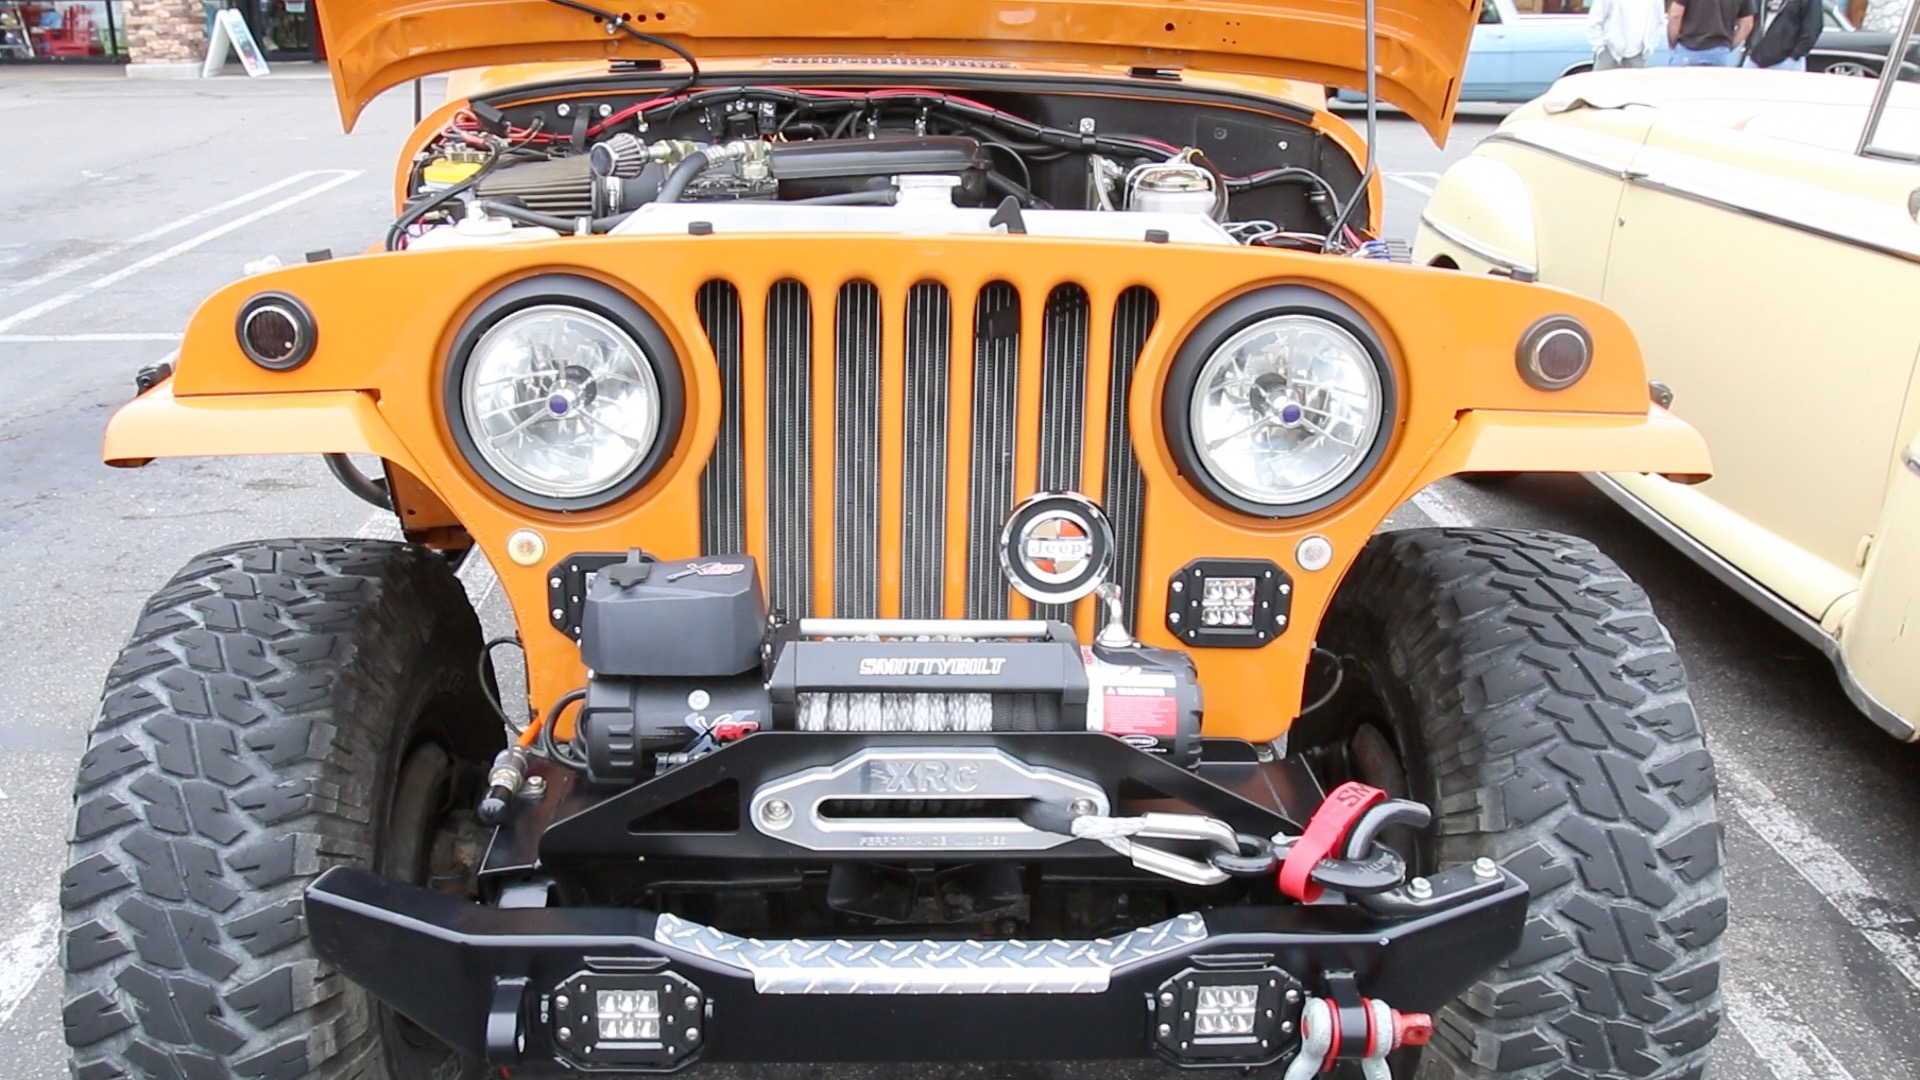 1972 Jeepster Commando, King of the off-road | Just Cool Cars